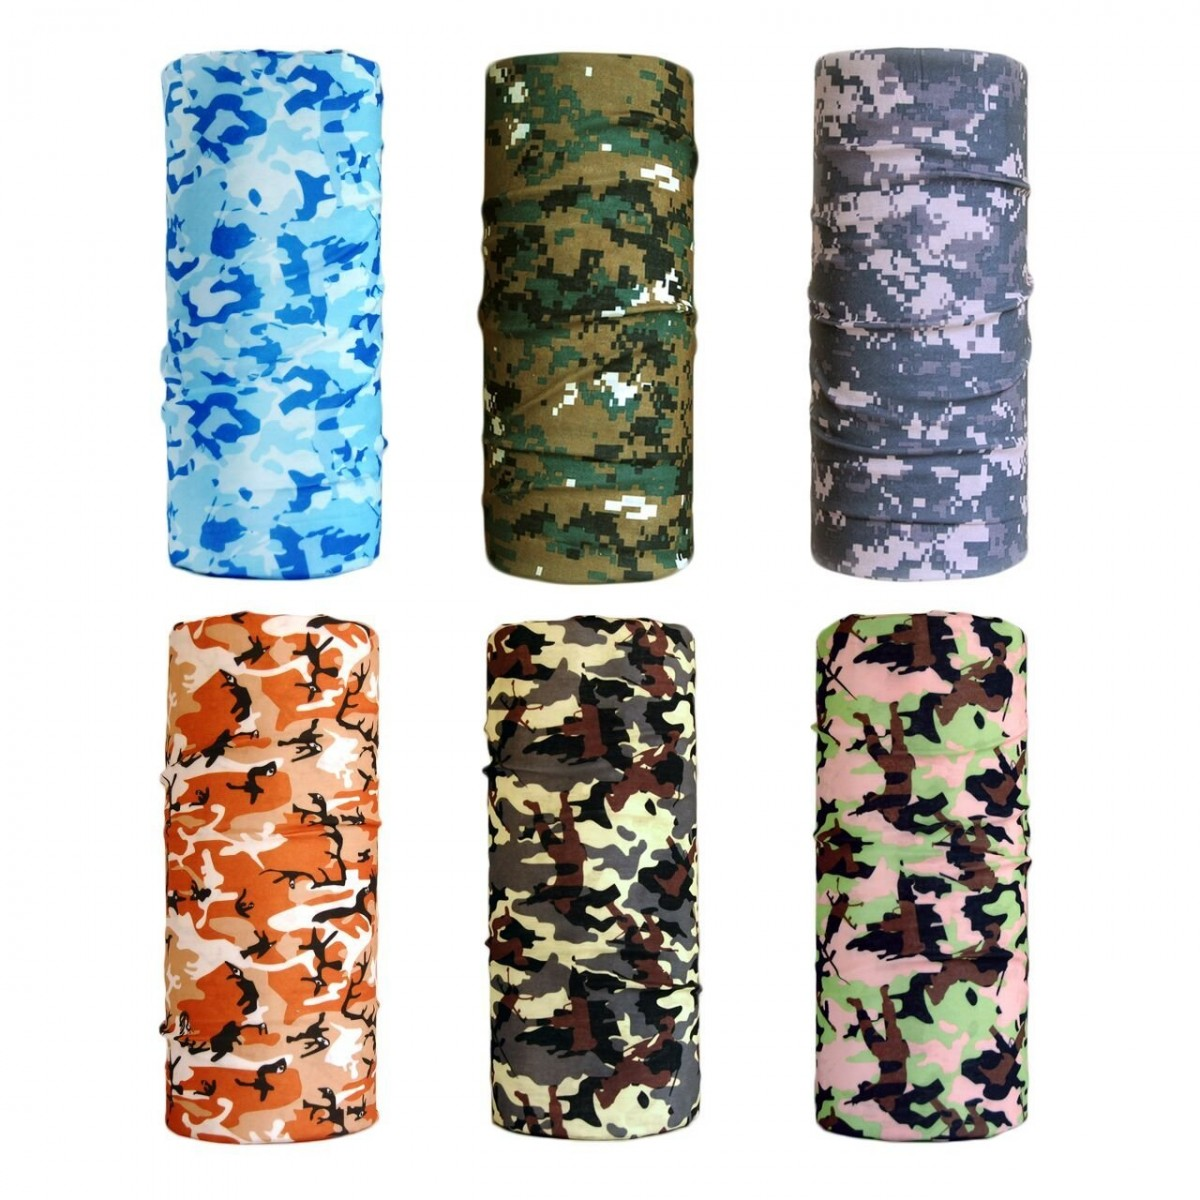 b0826d434 Cool Pack of 6 Pcs Seamless Style Camo Bandanna Headwear Scarf Wrap Neck  Gaiters. Perfect for Running and Hiking ...